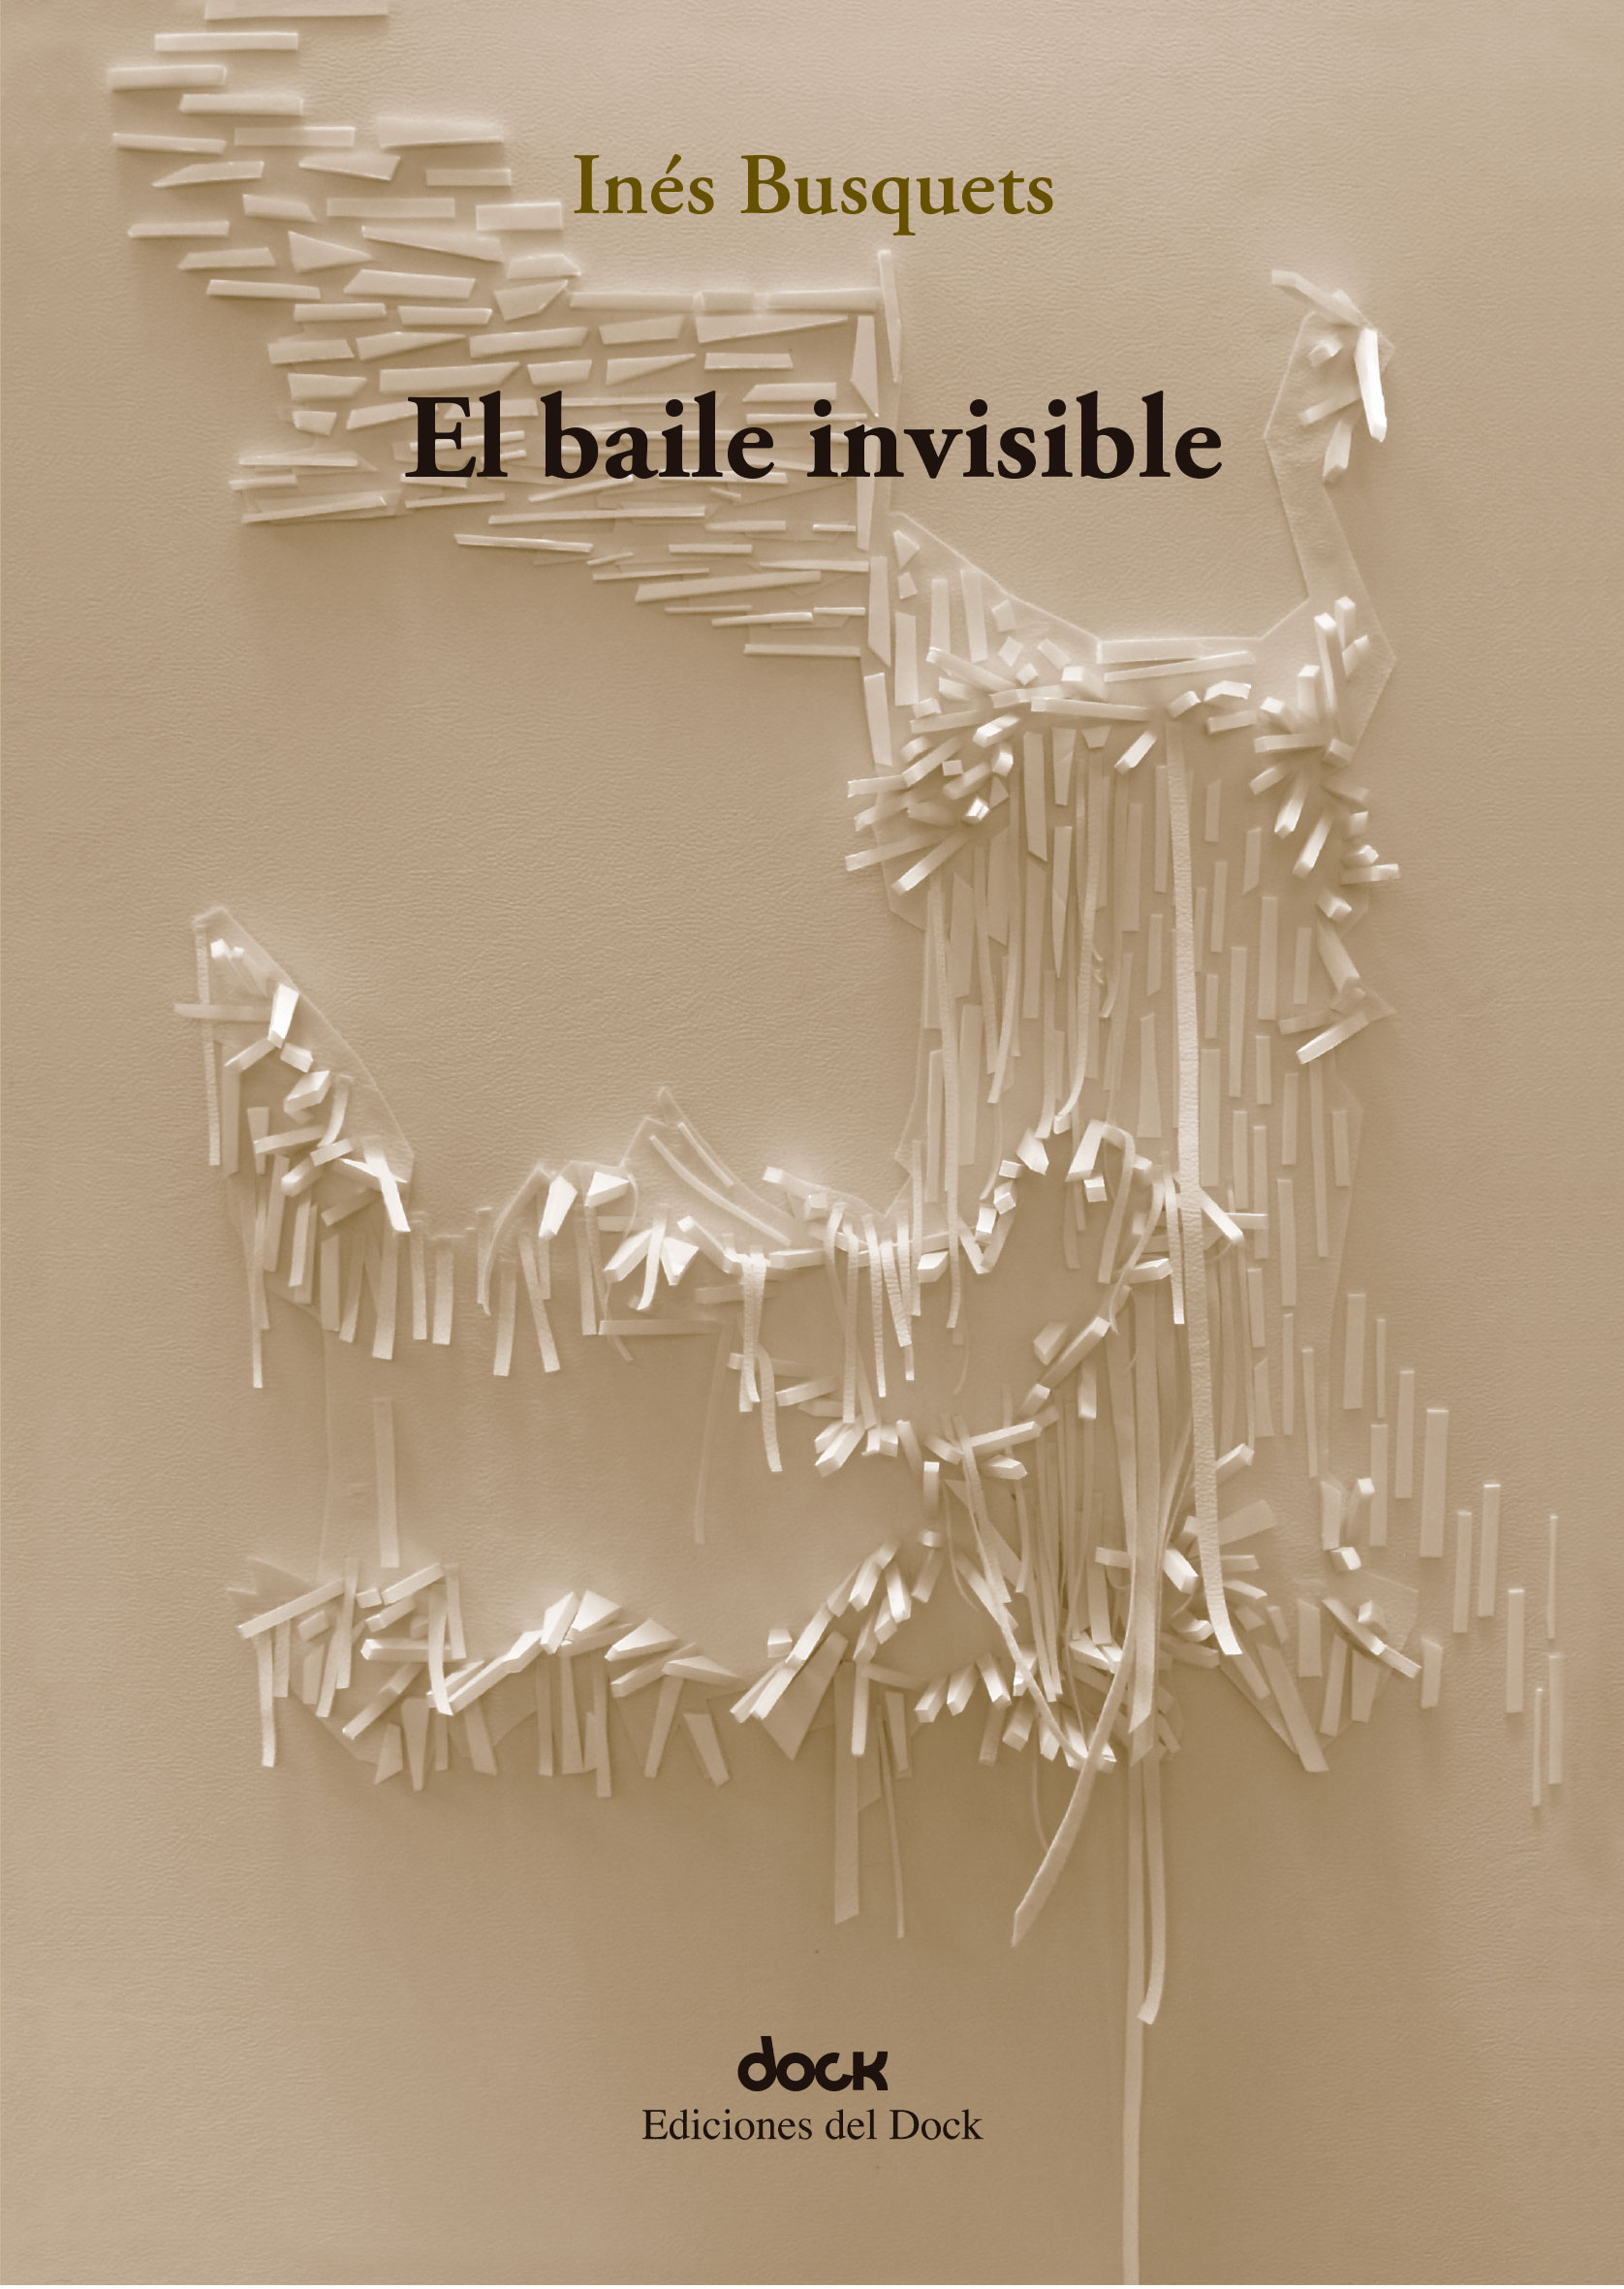 El baile invisible